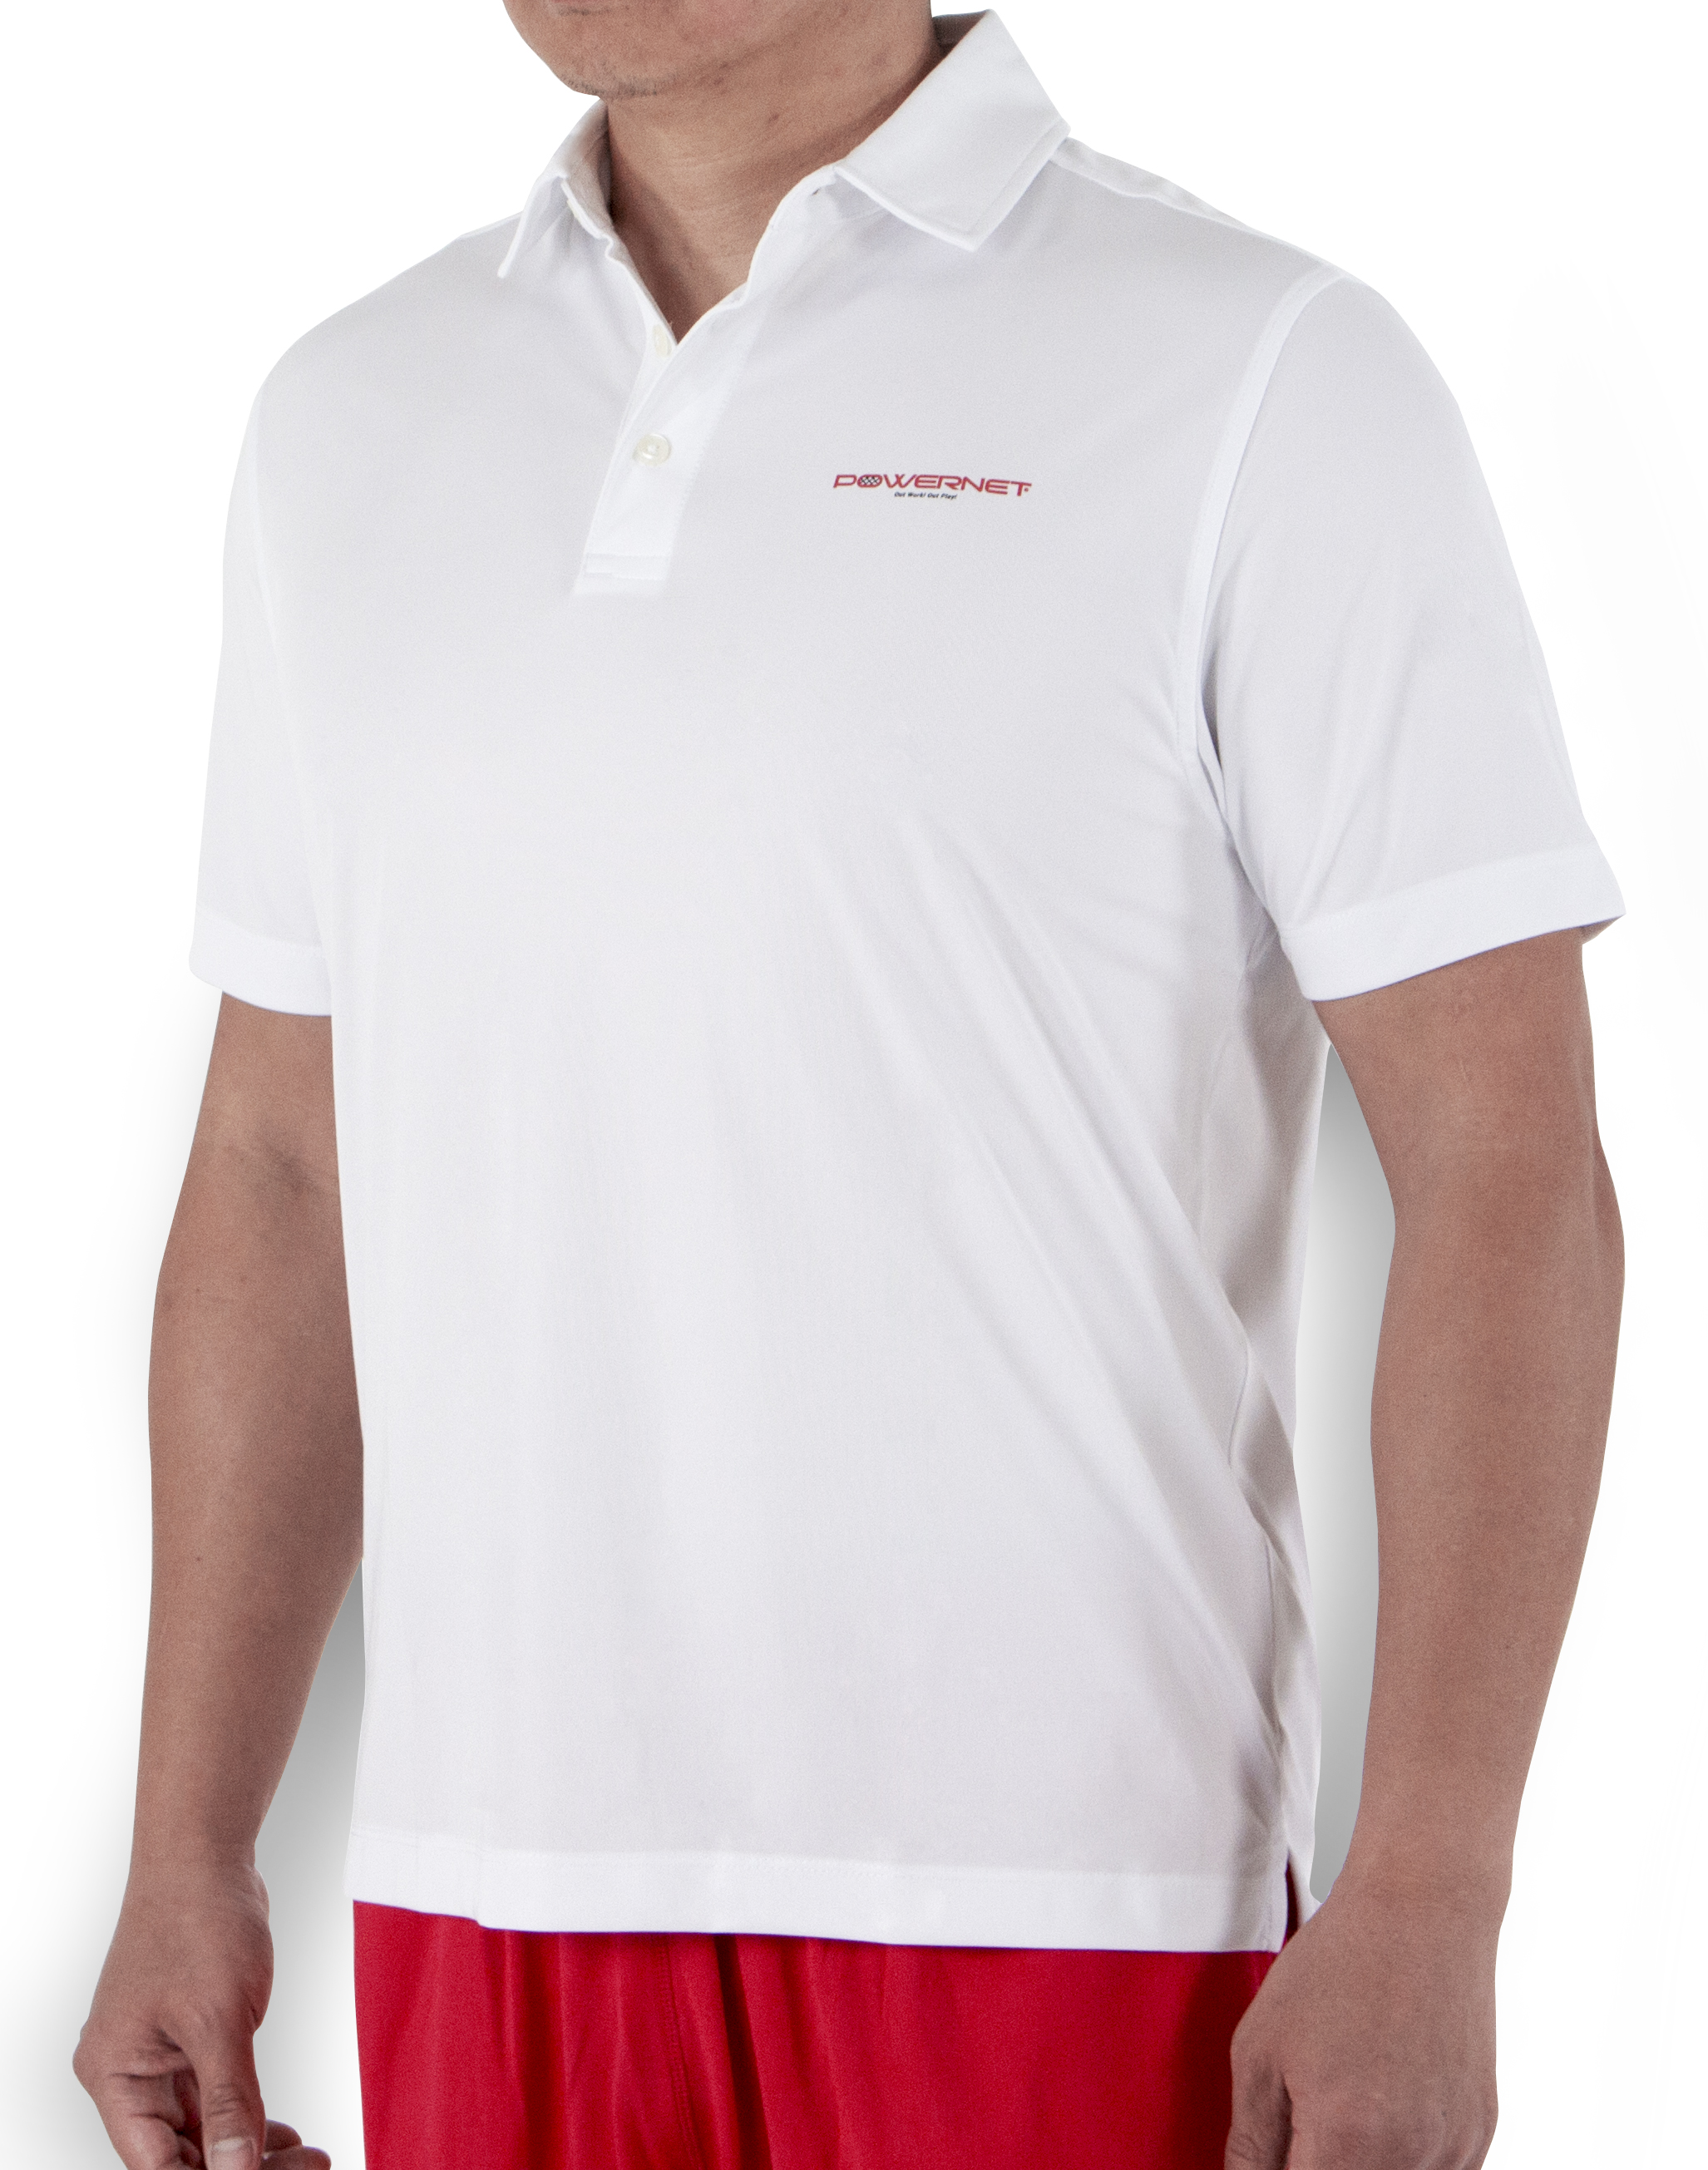 Powernet Mens Performance Golf Polo Shirt Short Sleeve Loose Fit